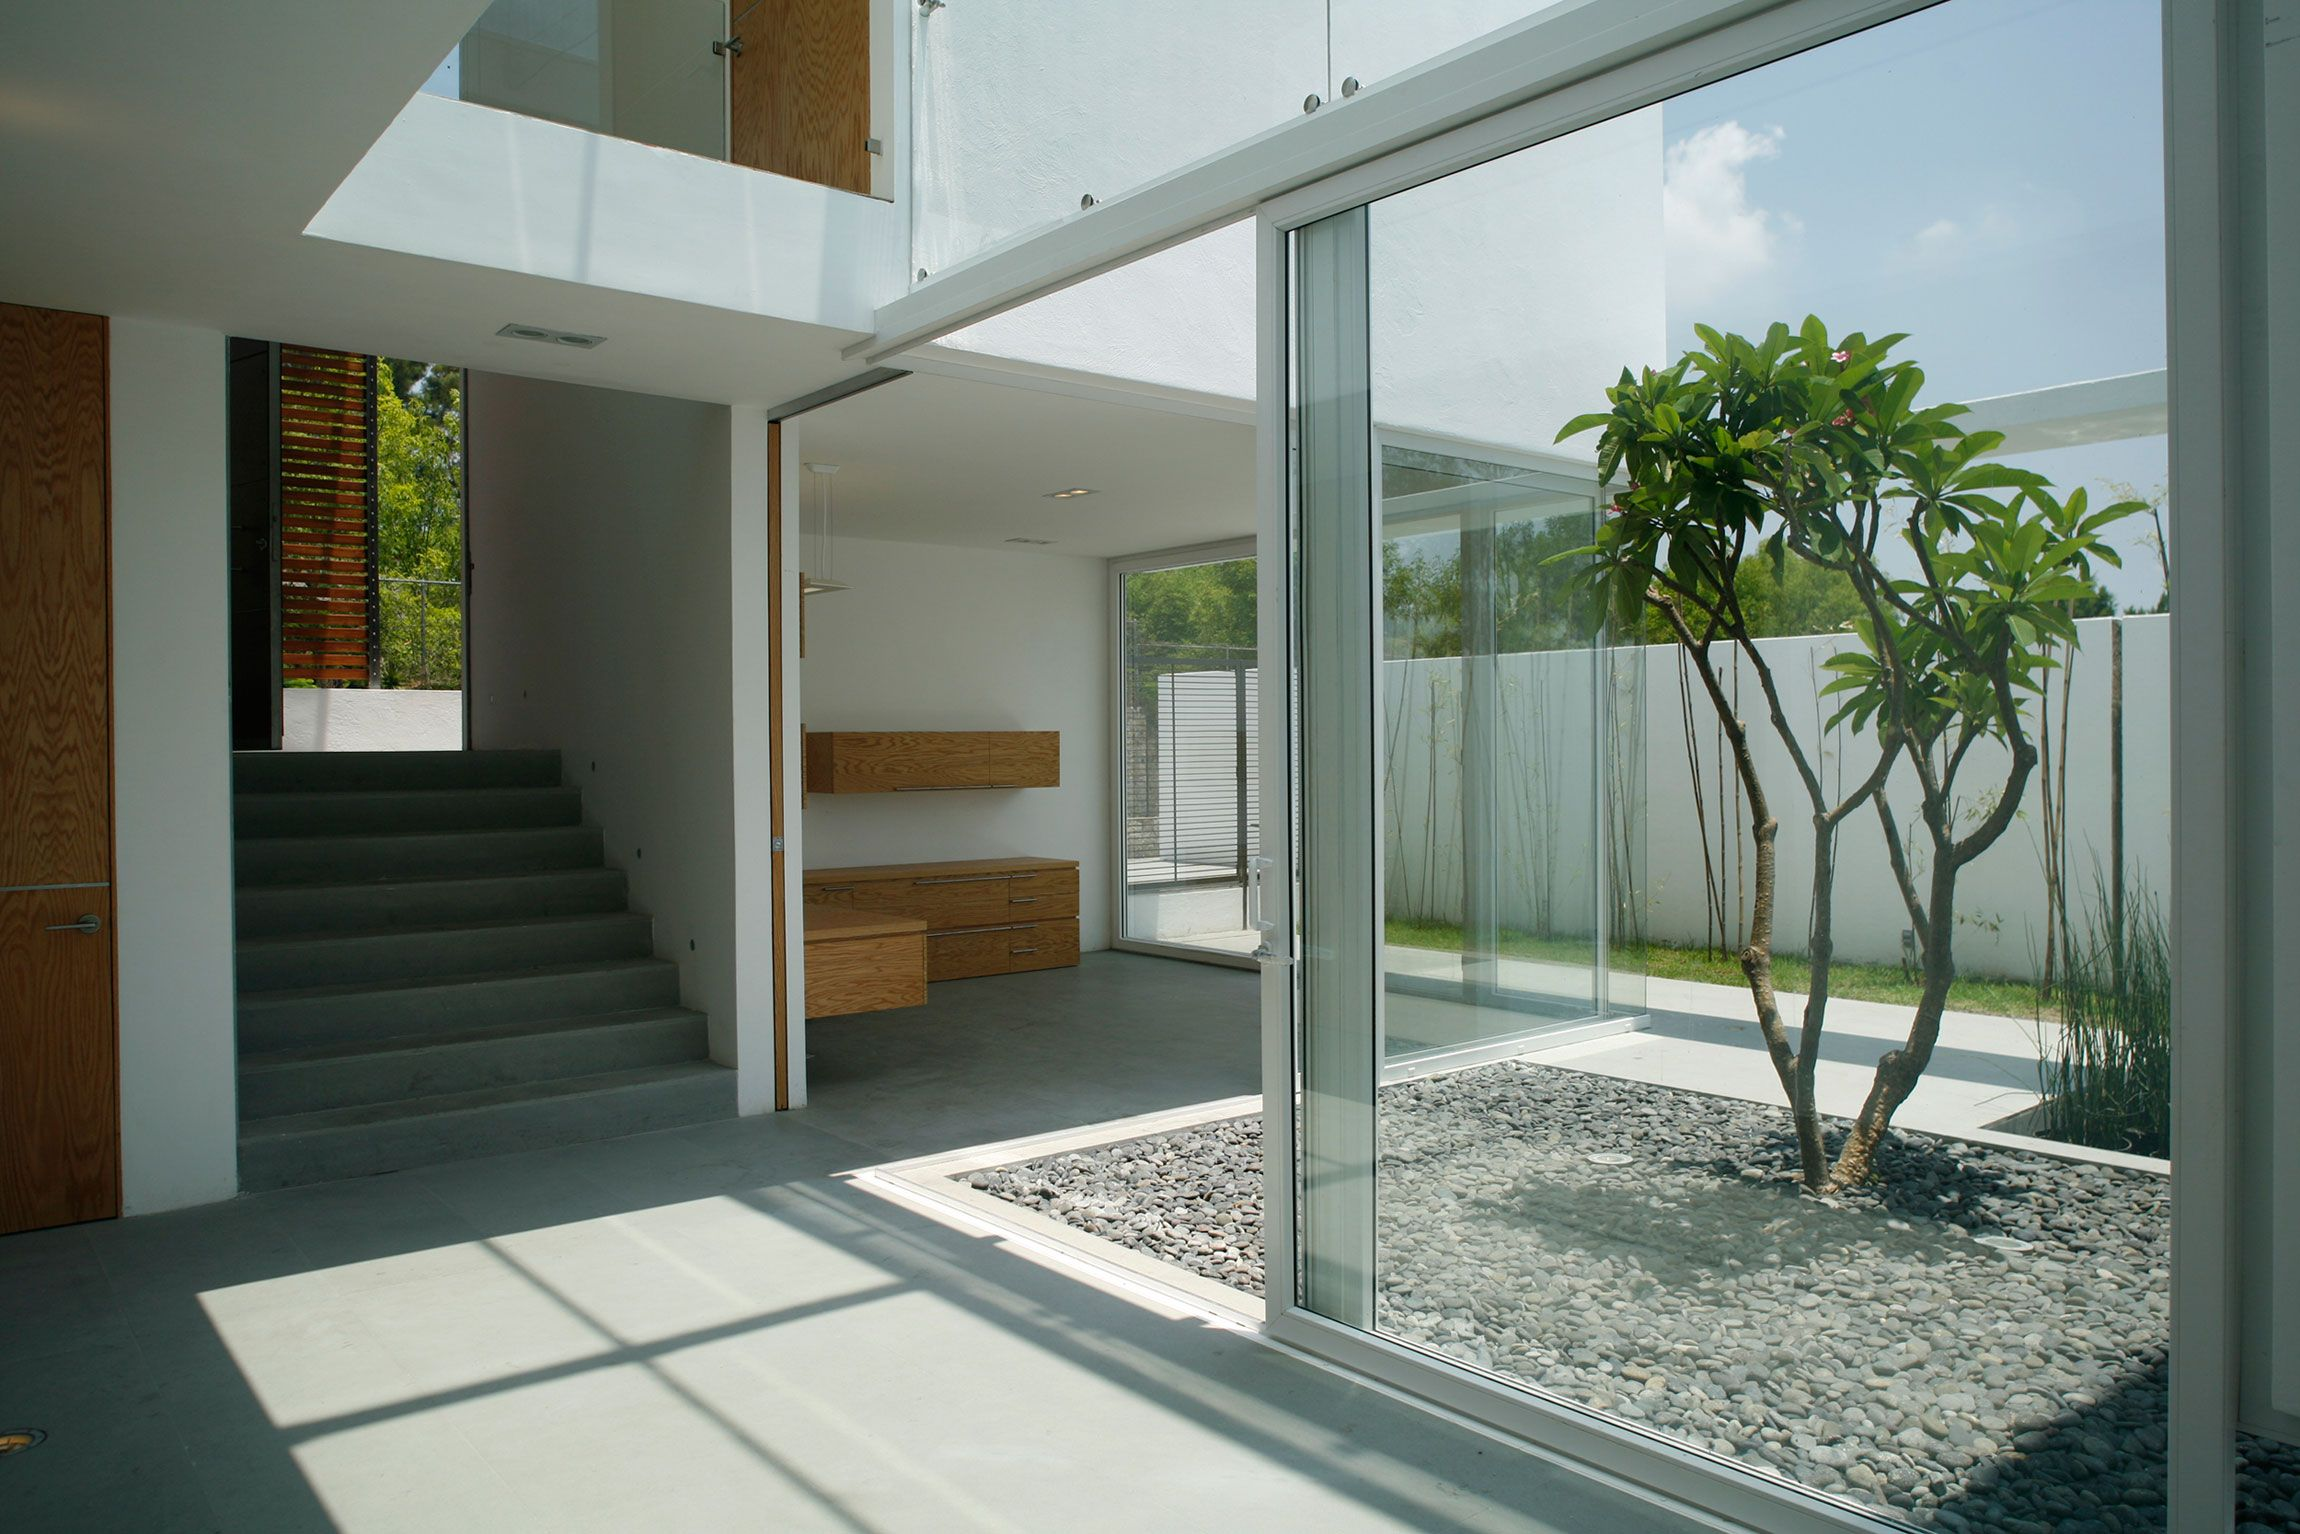 Architecture mesmerizing small courtyard modern minimalist for Small glass house plans